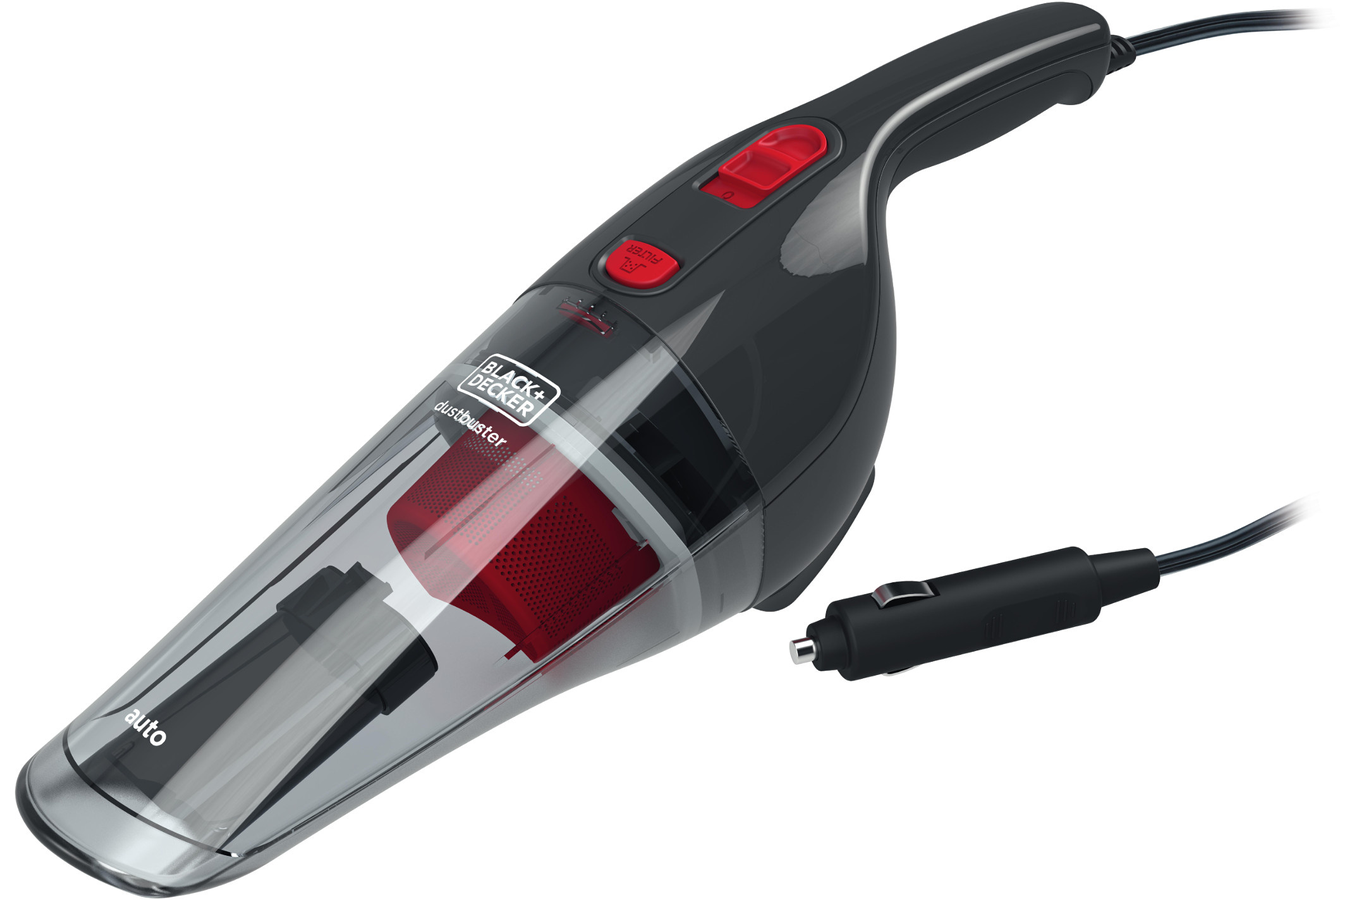 Aspirateur main black decker dustbuster auto nv 1200av - Petit aspirateur de table ...